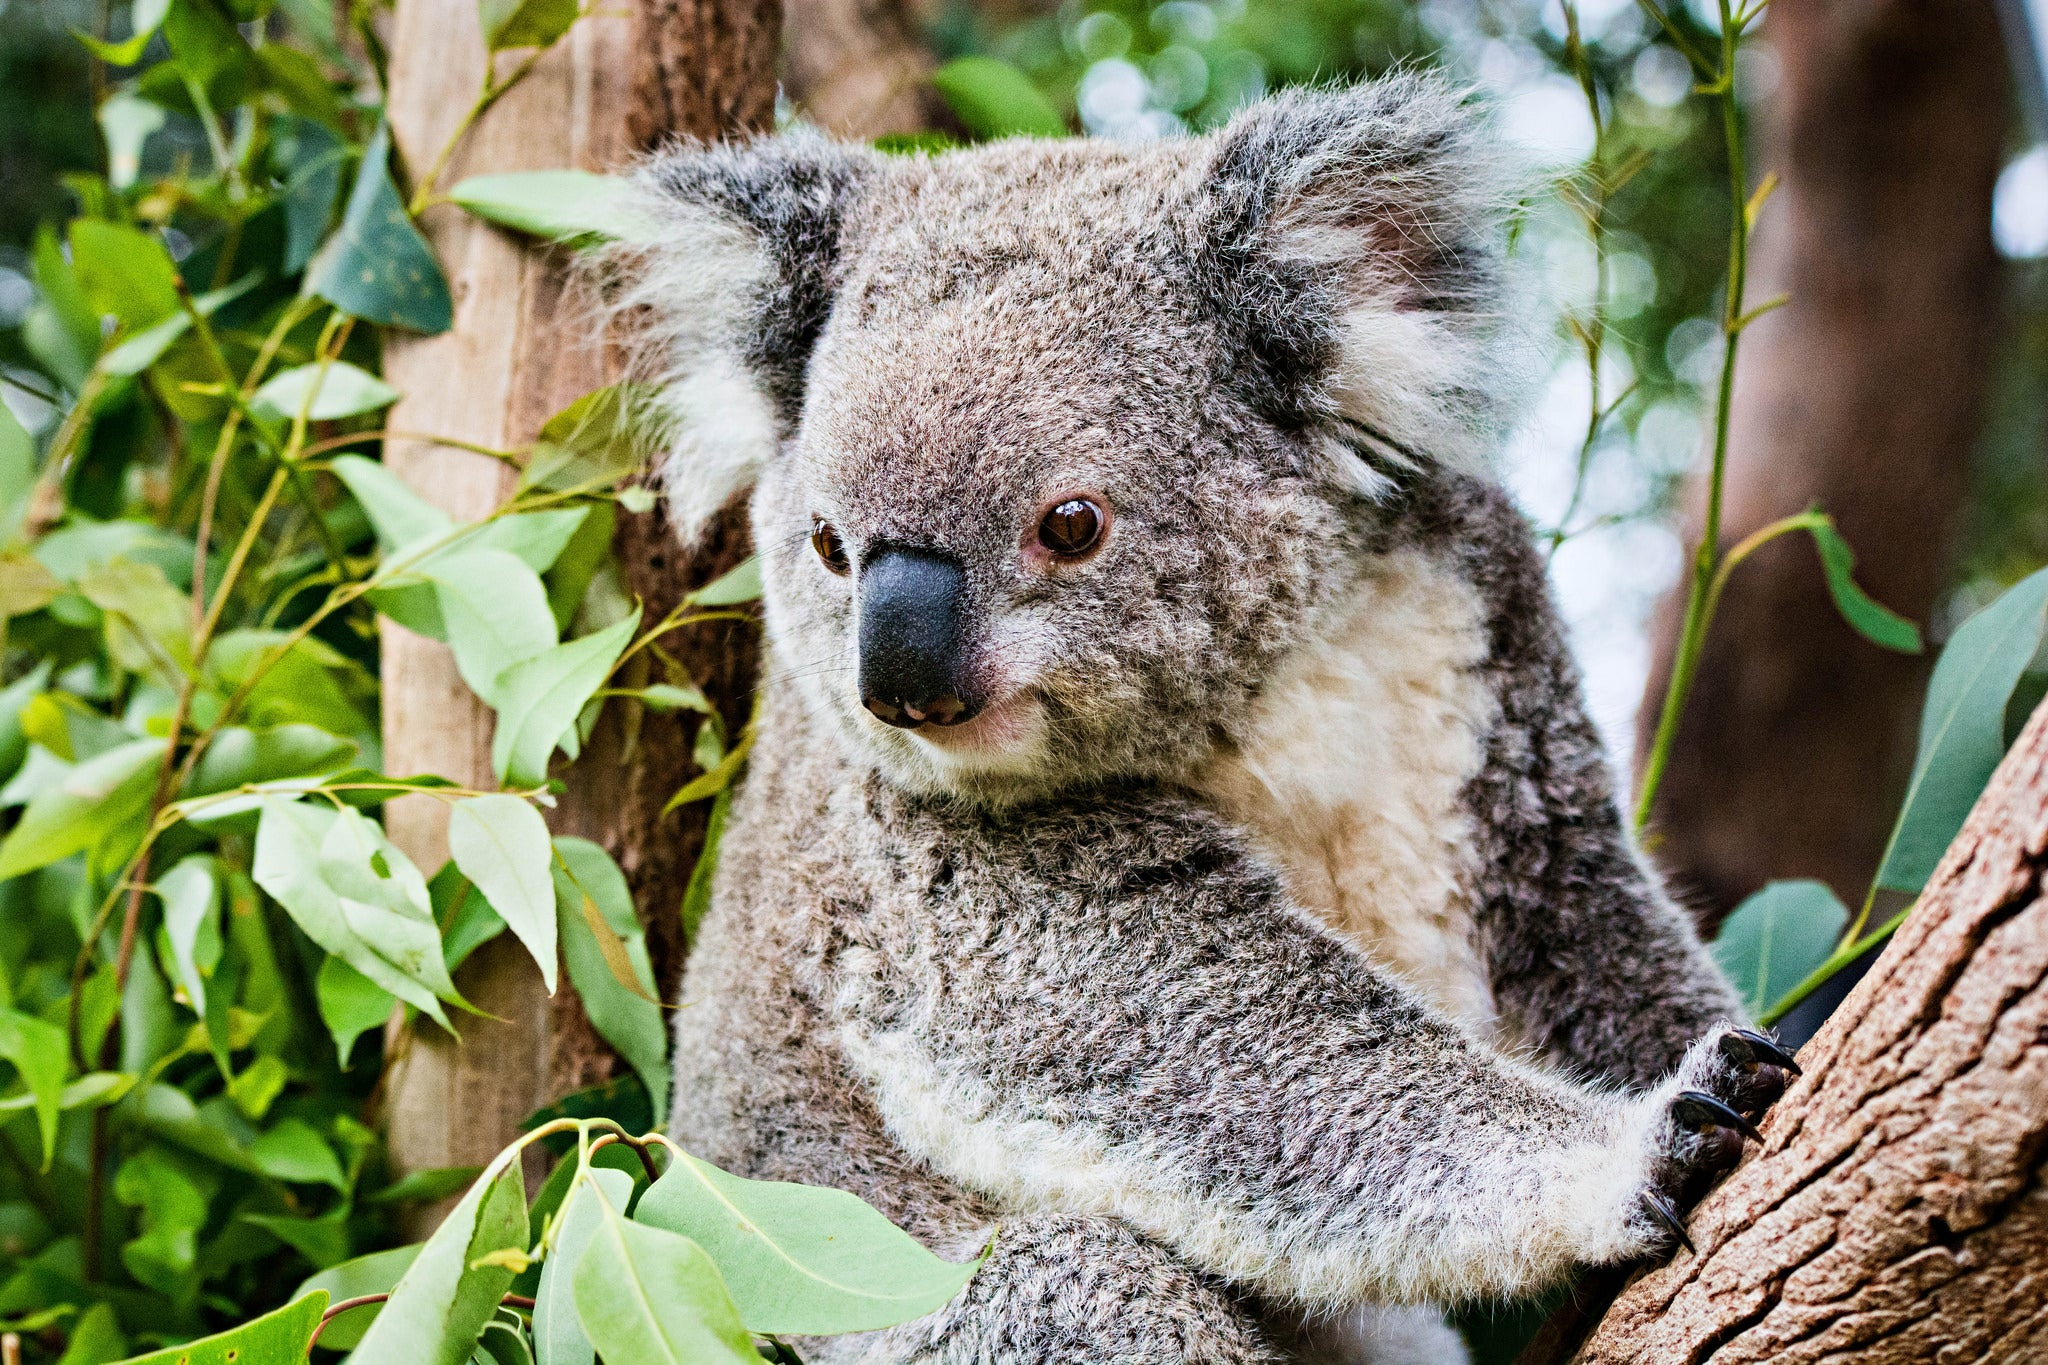 Chlamydia Vaccine Could Save The Wild Koala